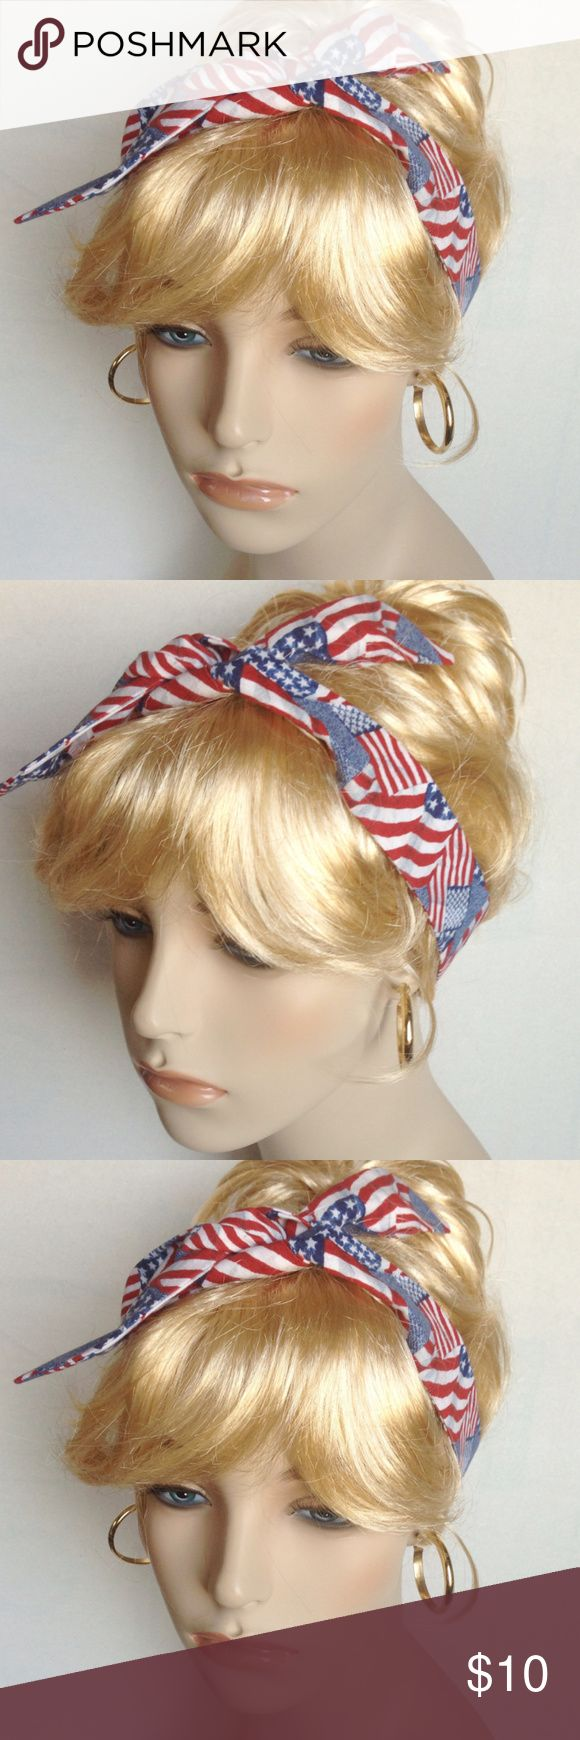 """Skinny Self Tie Rockabilly Headband Red White Blue Rockabilly Headband Skinny Self Tie Dolly Bow Retro Pin Up Red White Blue  Reminiscent of the 50s era, you can tie this in front, to the side or in back of the head.   Length approximately 40""""   Width approximately 1-1/2""""  Care:  Hand wash cold water.  Lay flat to dry.  Iron as needed.  It is handmade in my smoke-free home.  Thank you for looking! AnnAngelica Handmade Accessories Hair Accessories"""